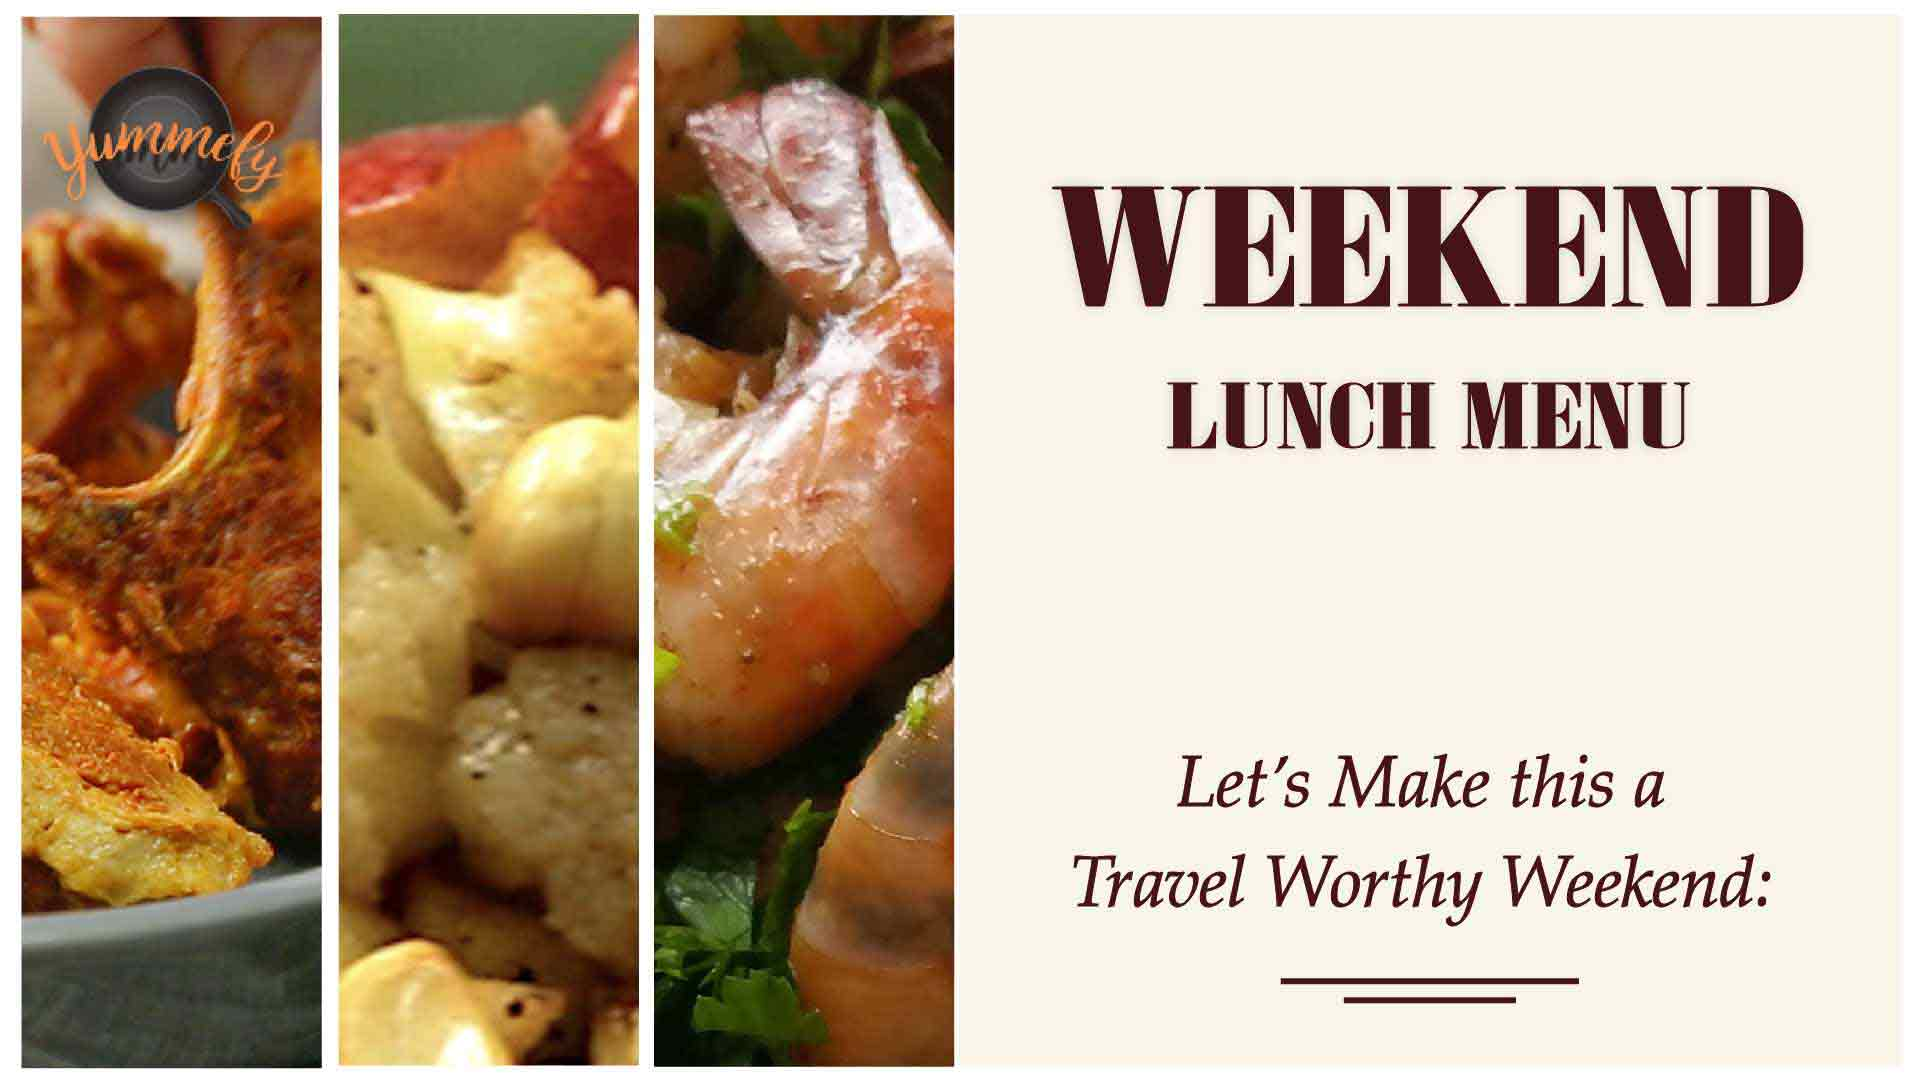 Travel Worthy Weekend Lunch Menu